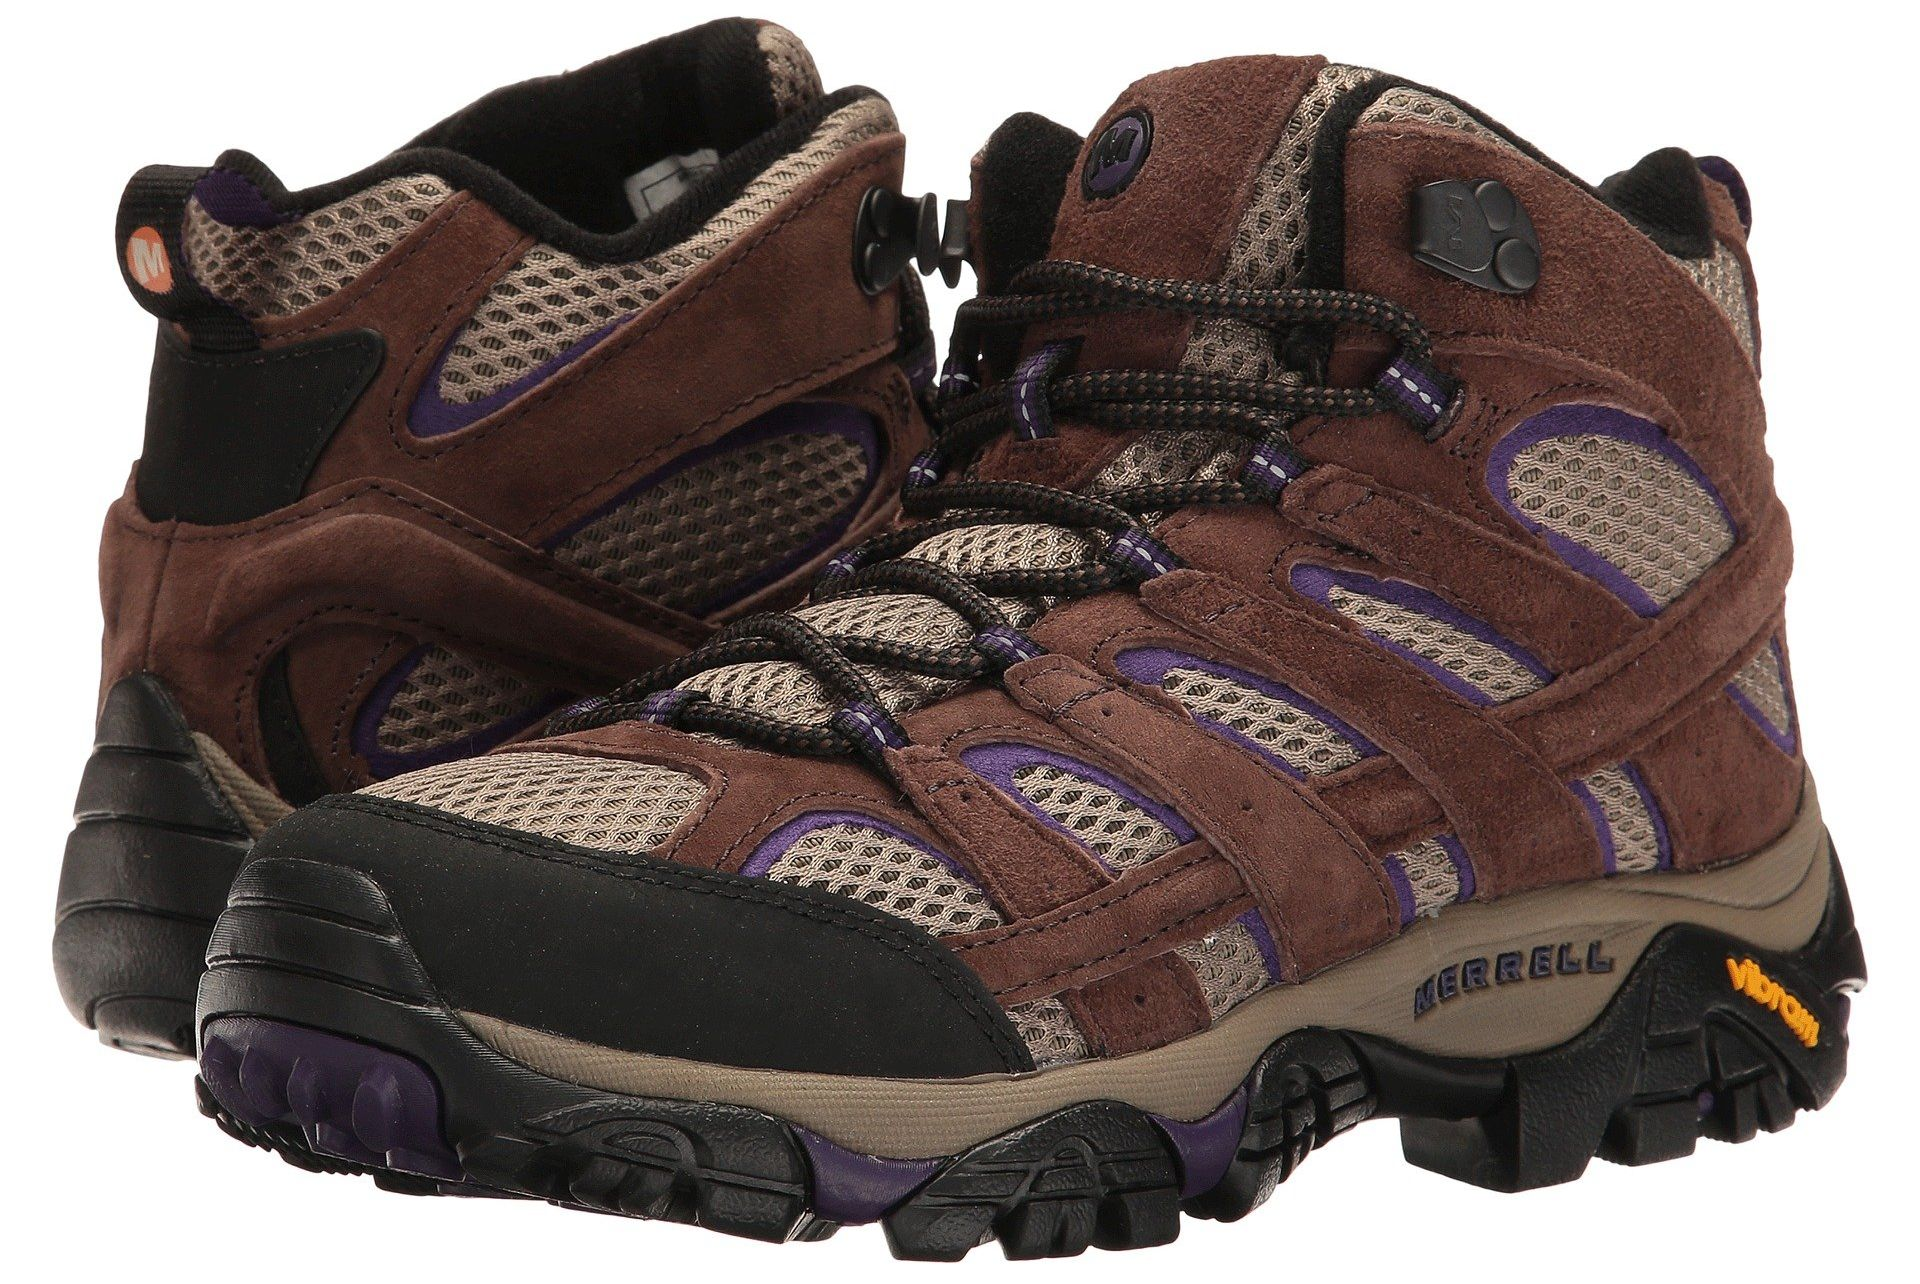 Best Hiking Boots - Top Rated Hiking Boots for Men and Women